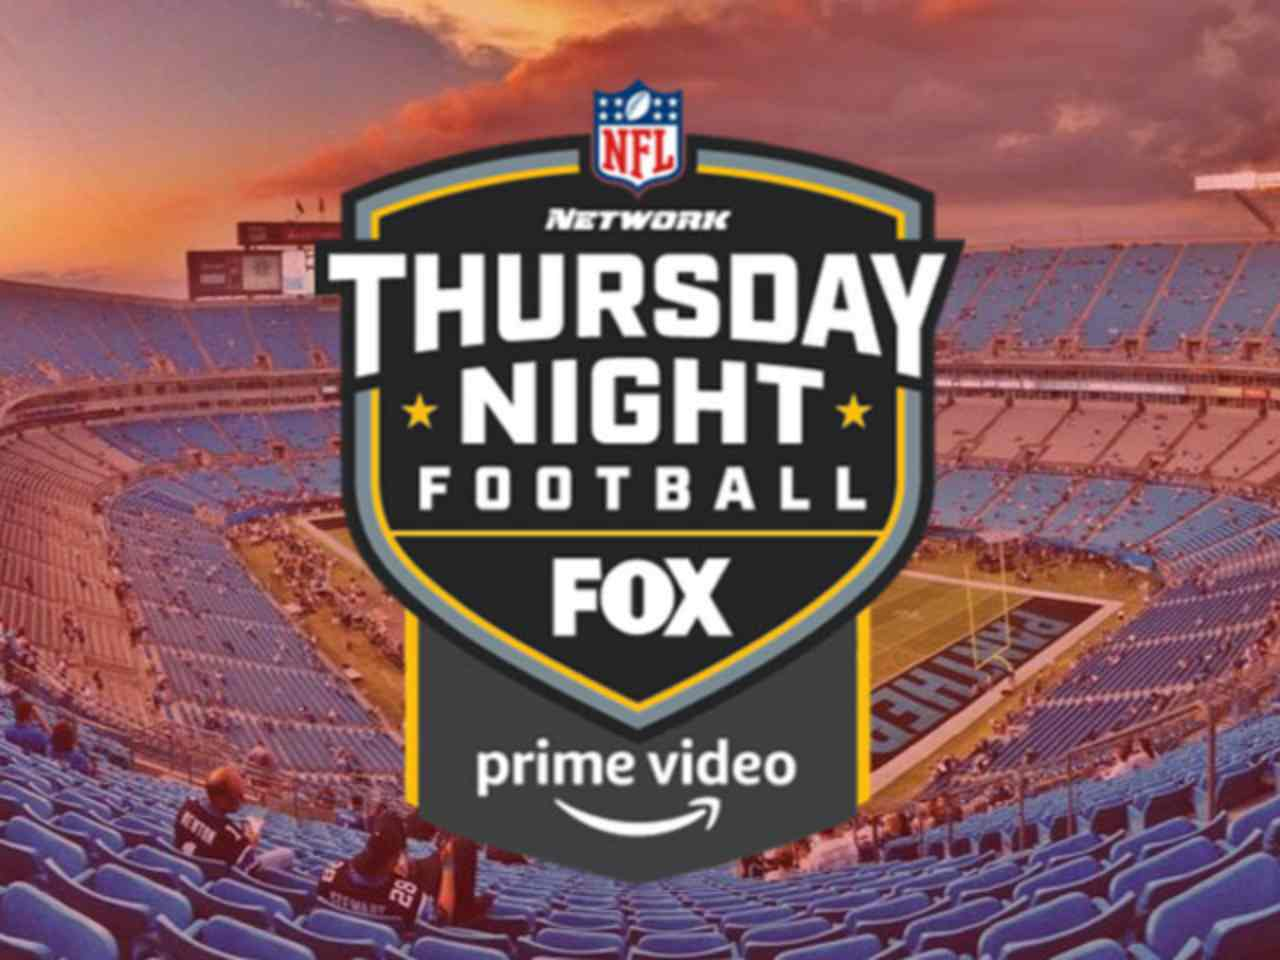 Nfl su Amazon Prime Video (Foto Plataformas)